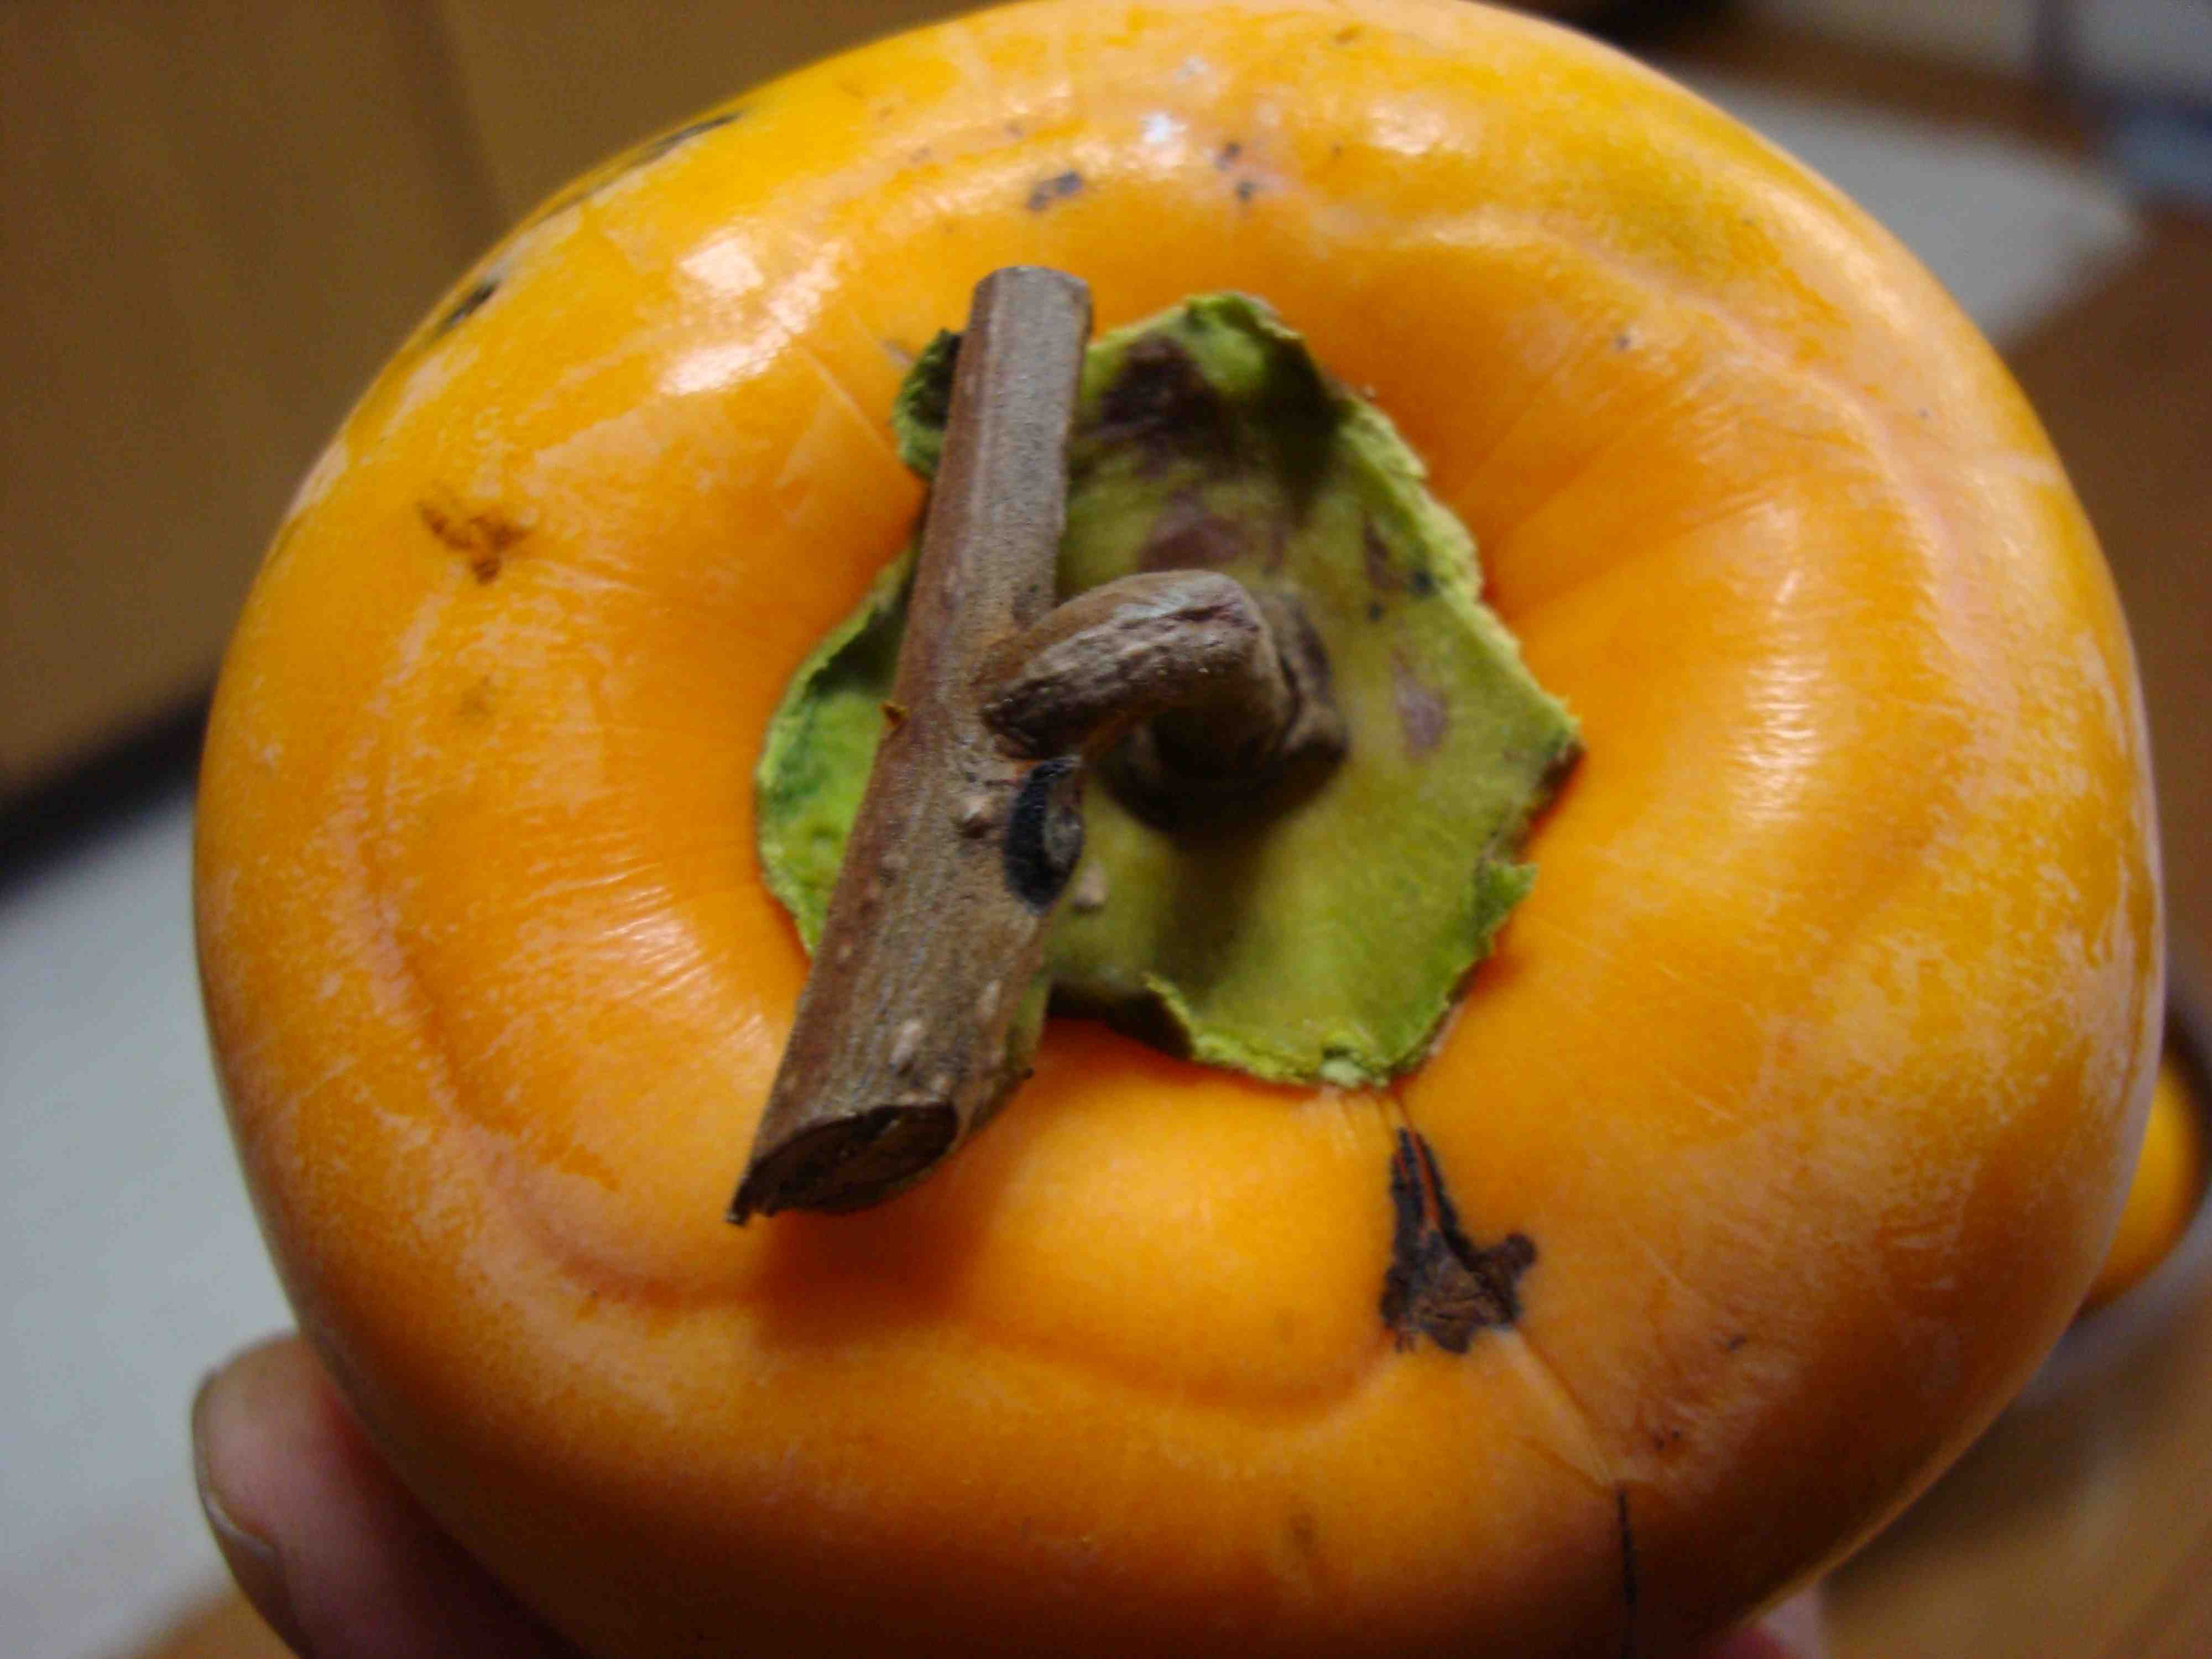 Sour Persimmon